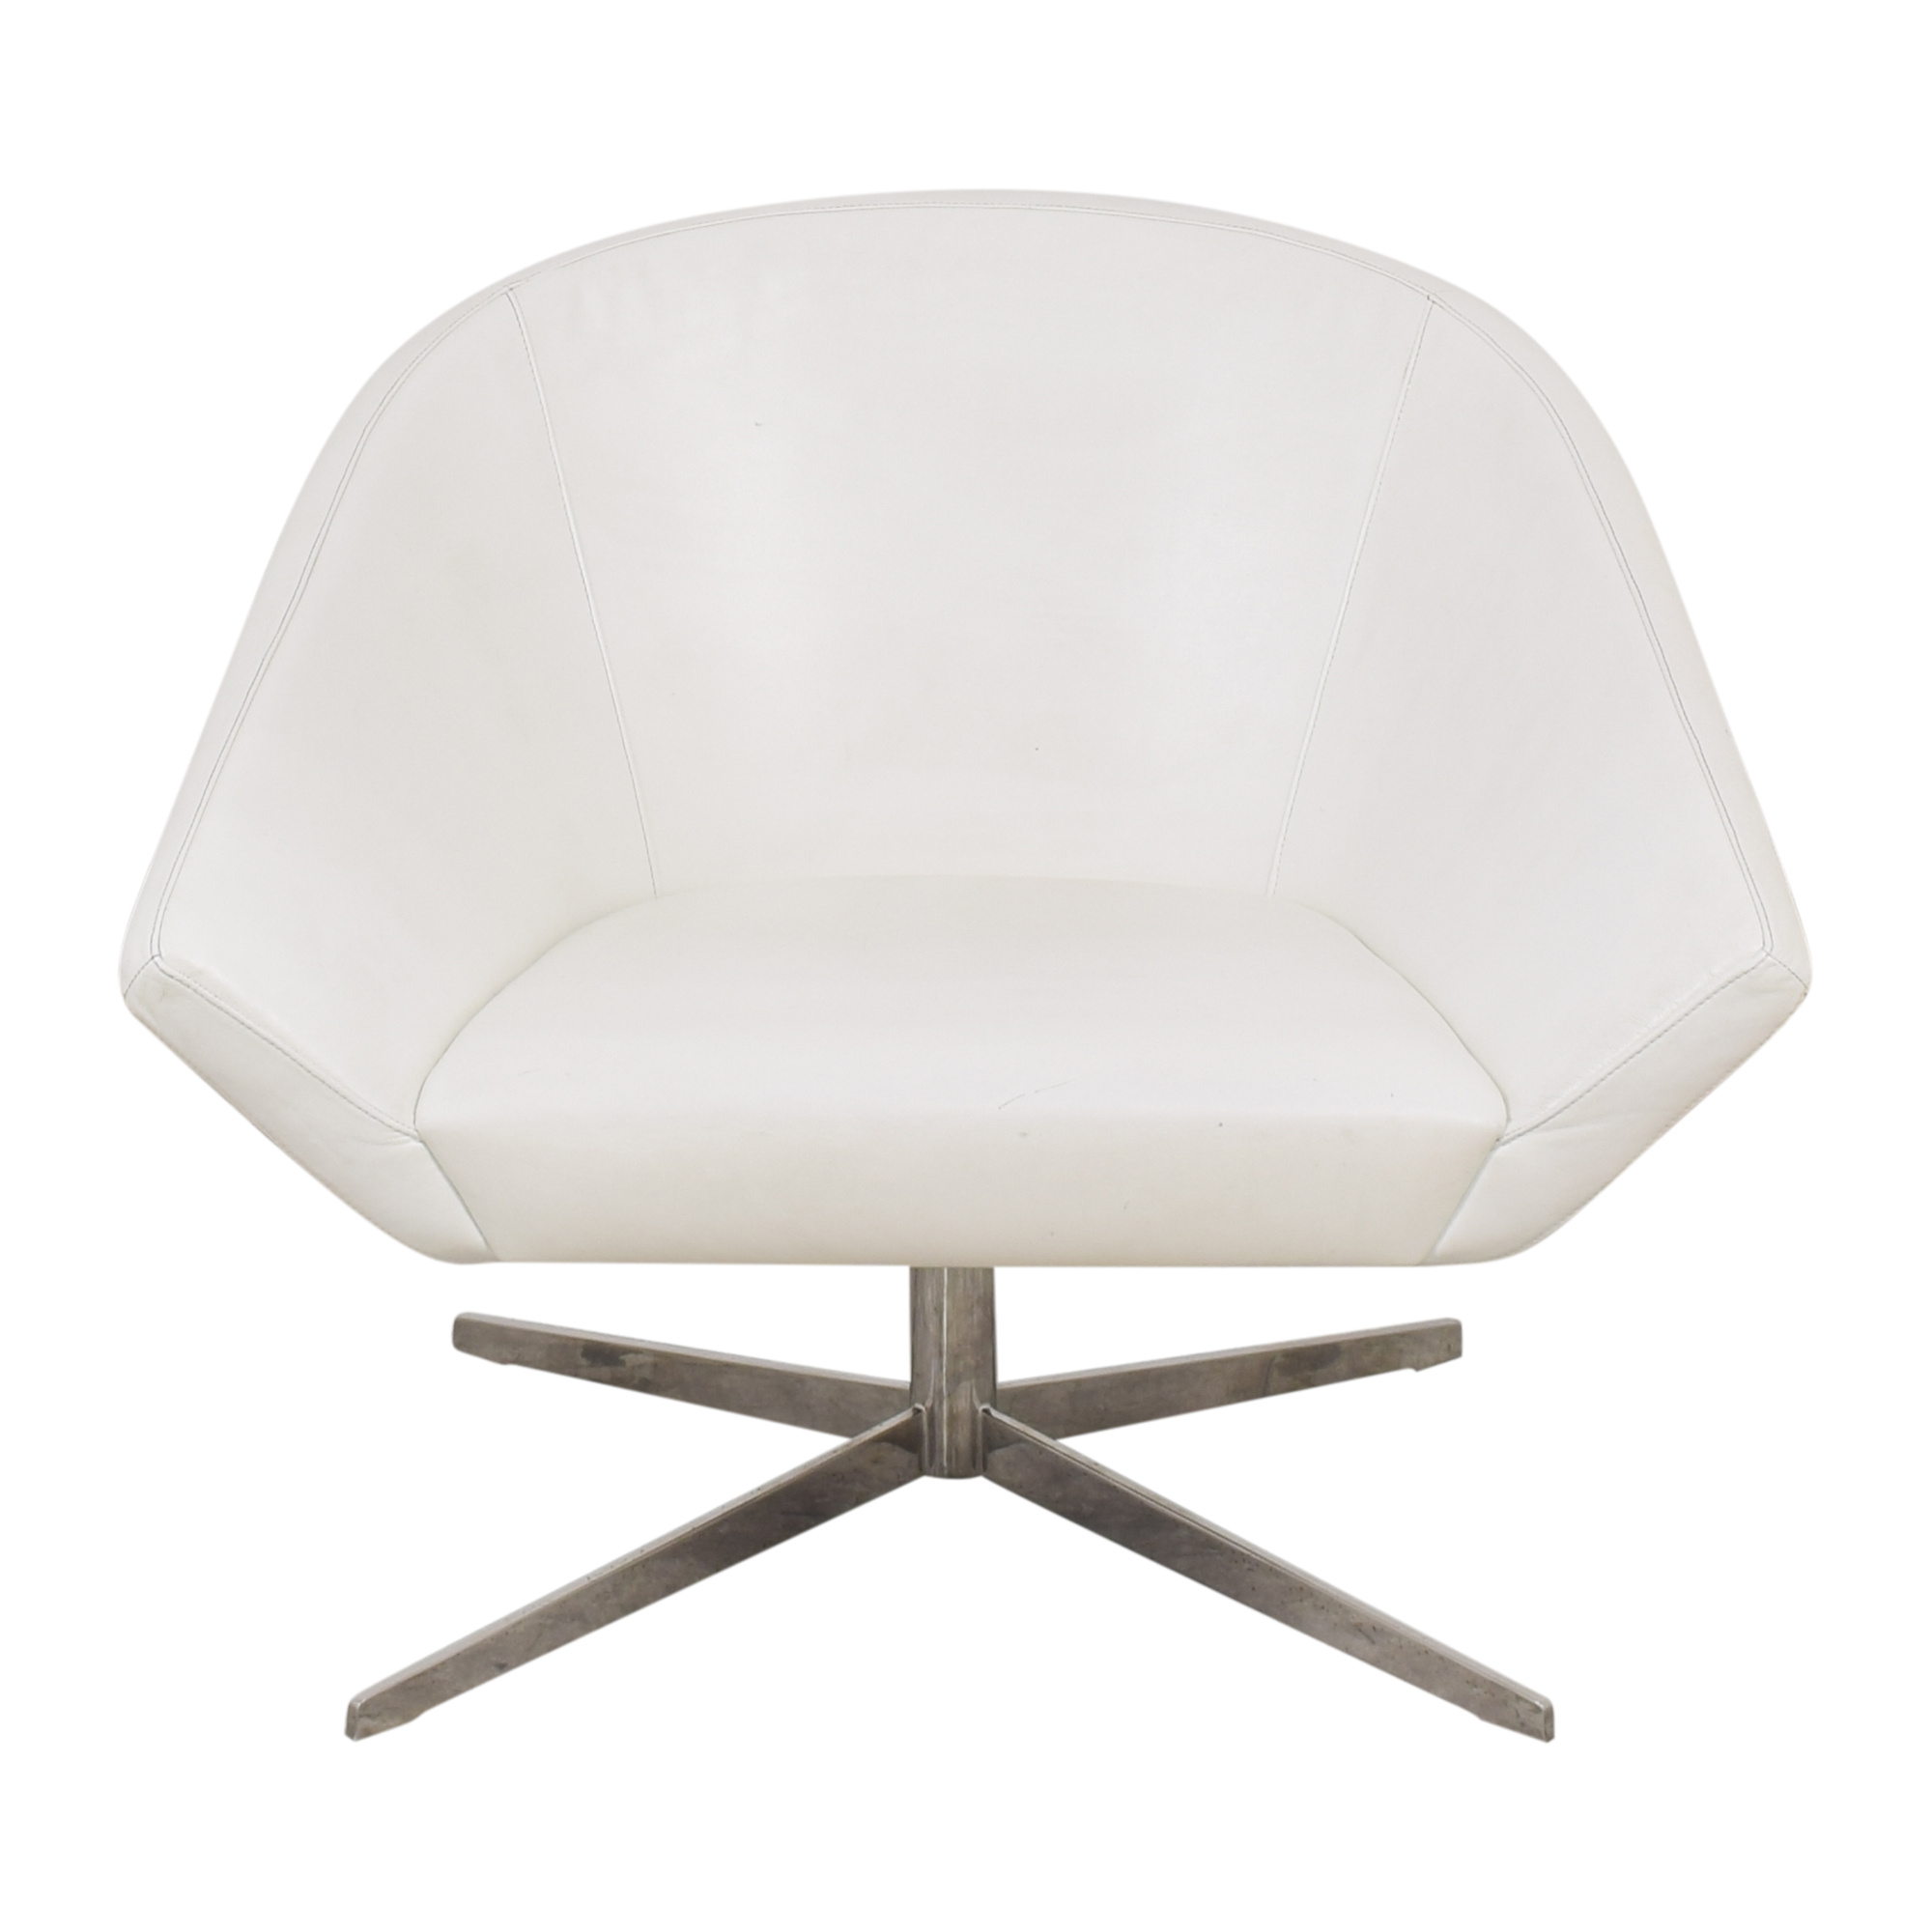 Bernhardt Bernhardt Remy Lounge Chair coupon